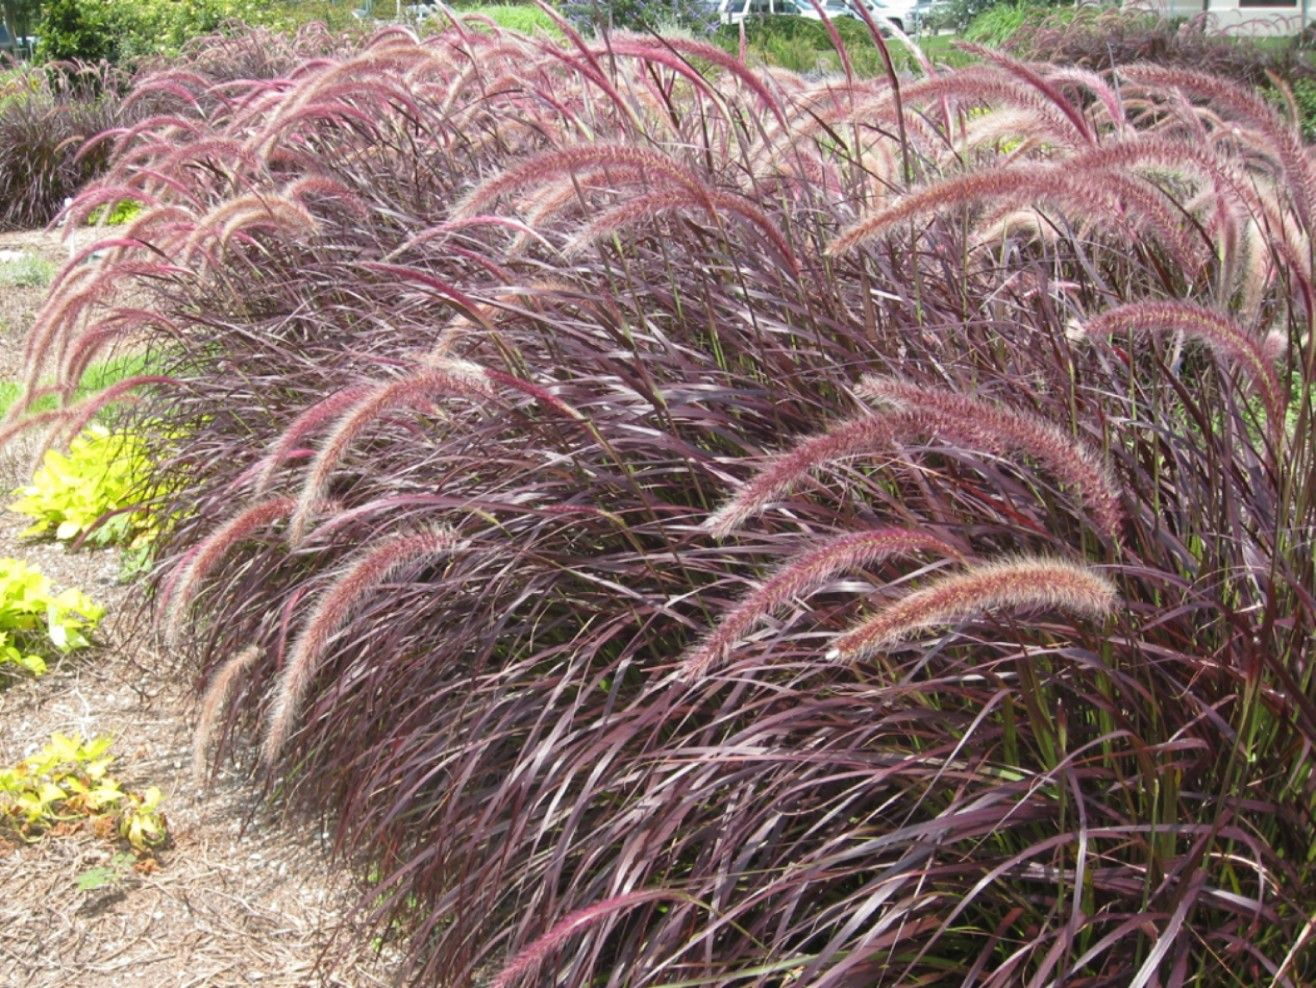 Ornamental grass for shade - Pennisetum Setaceum Rubrum Lavender Fountain Grass Hardy To 20 Degrees Full Sun To